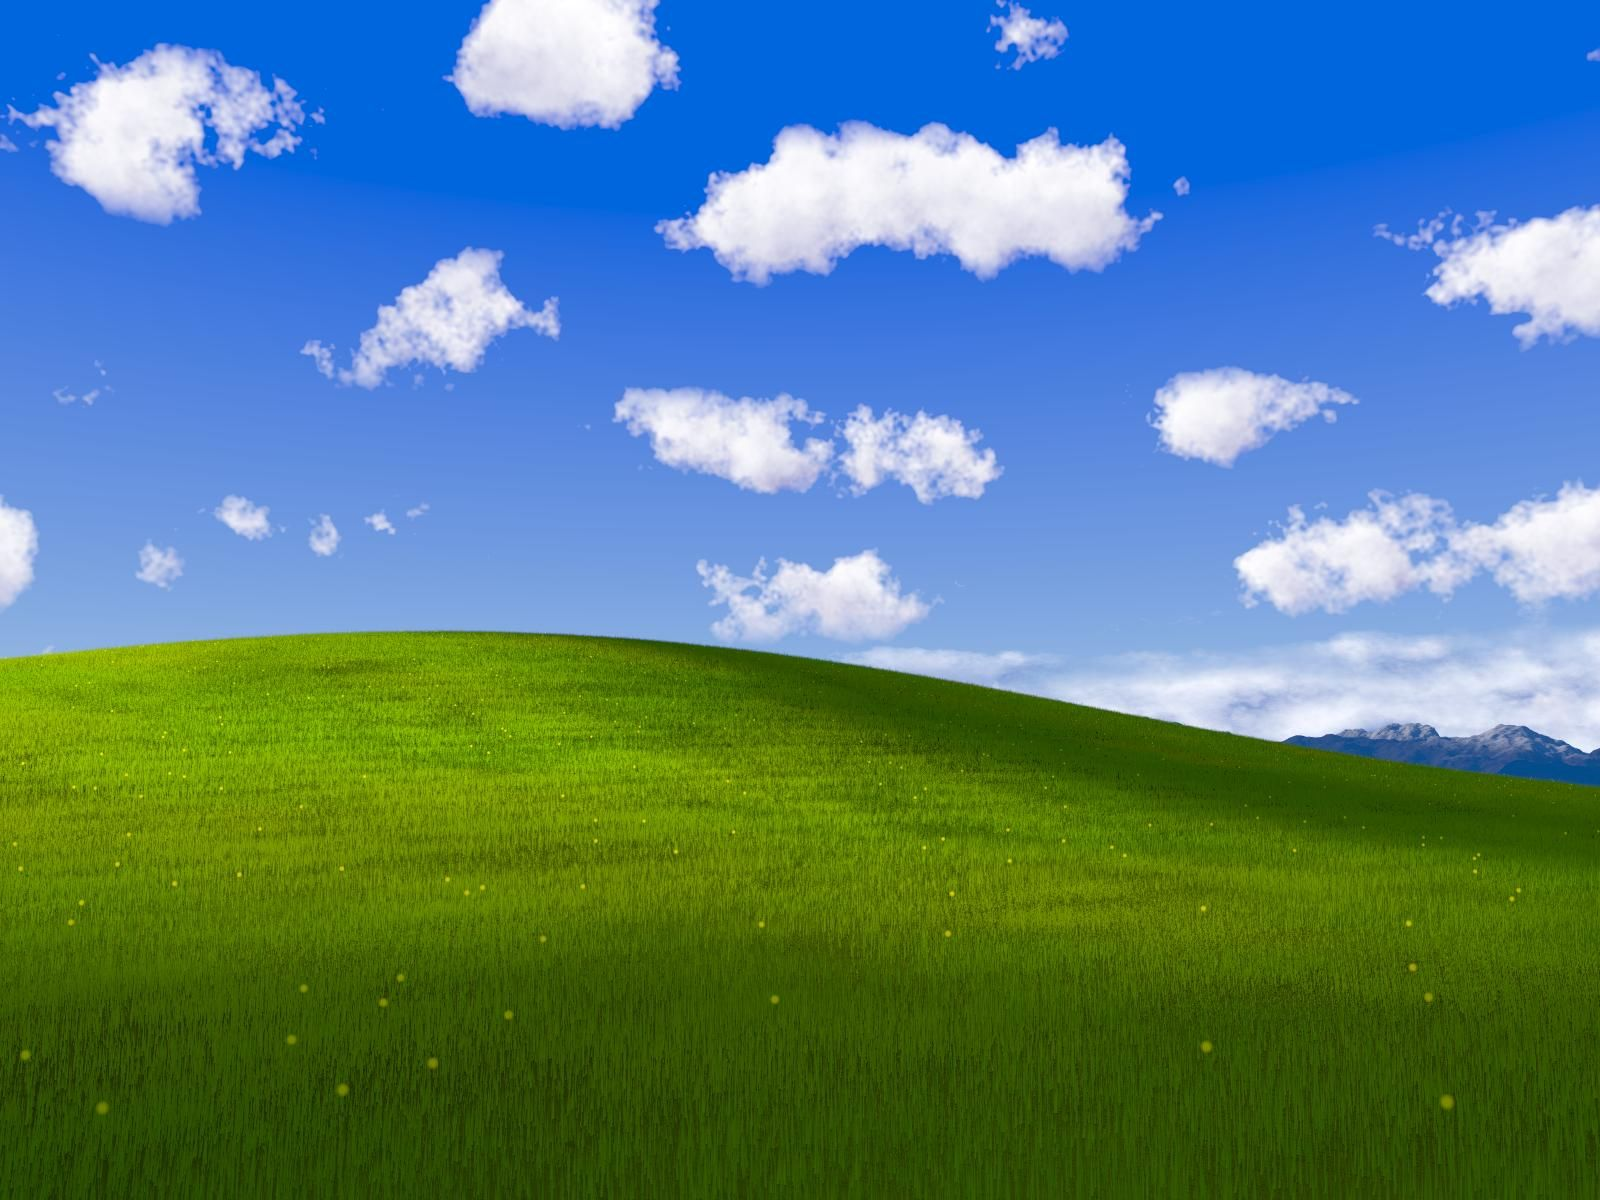 windows xp original wallpaper 1600a—1200 windows xp original wallpapers 47 wallpapers